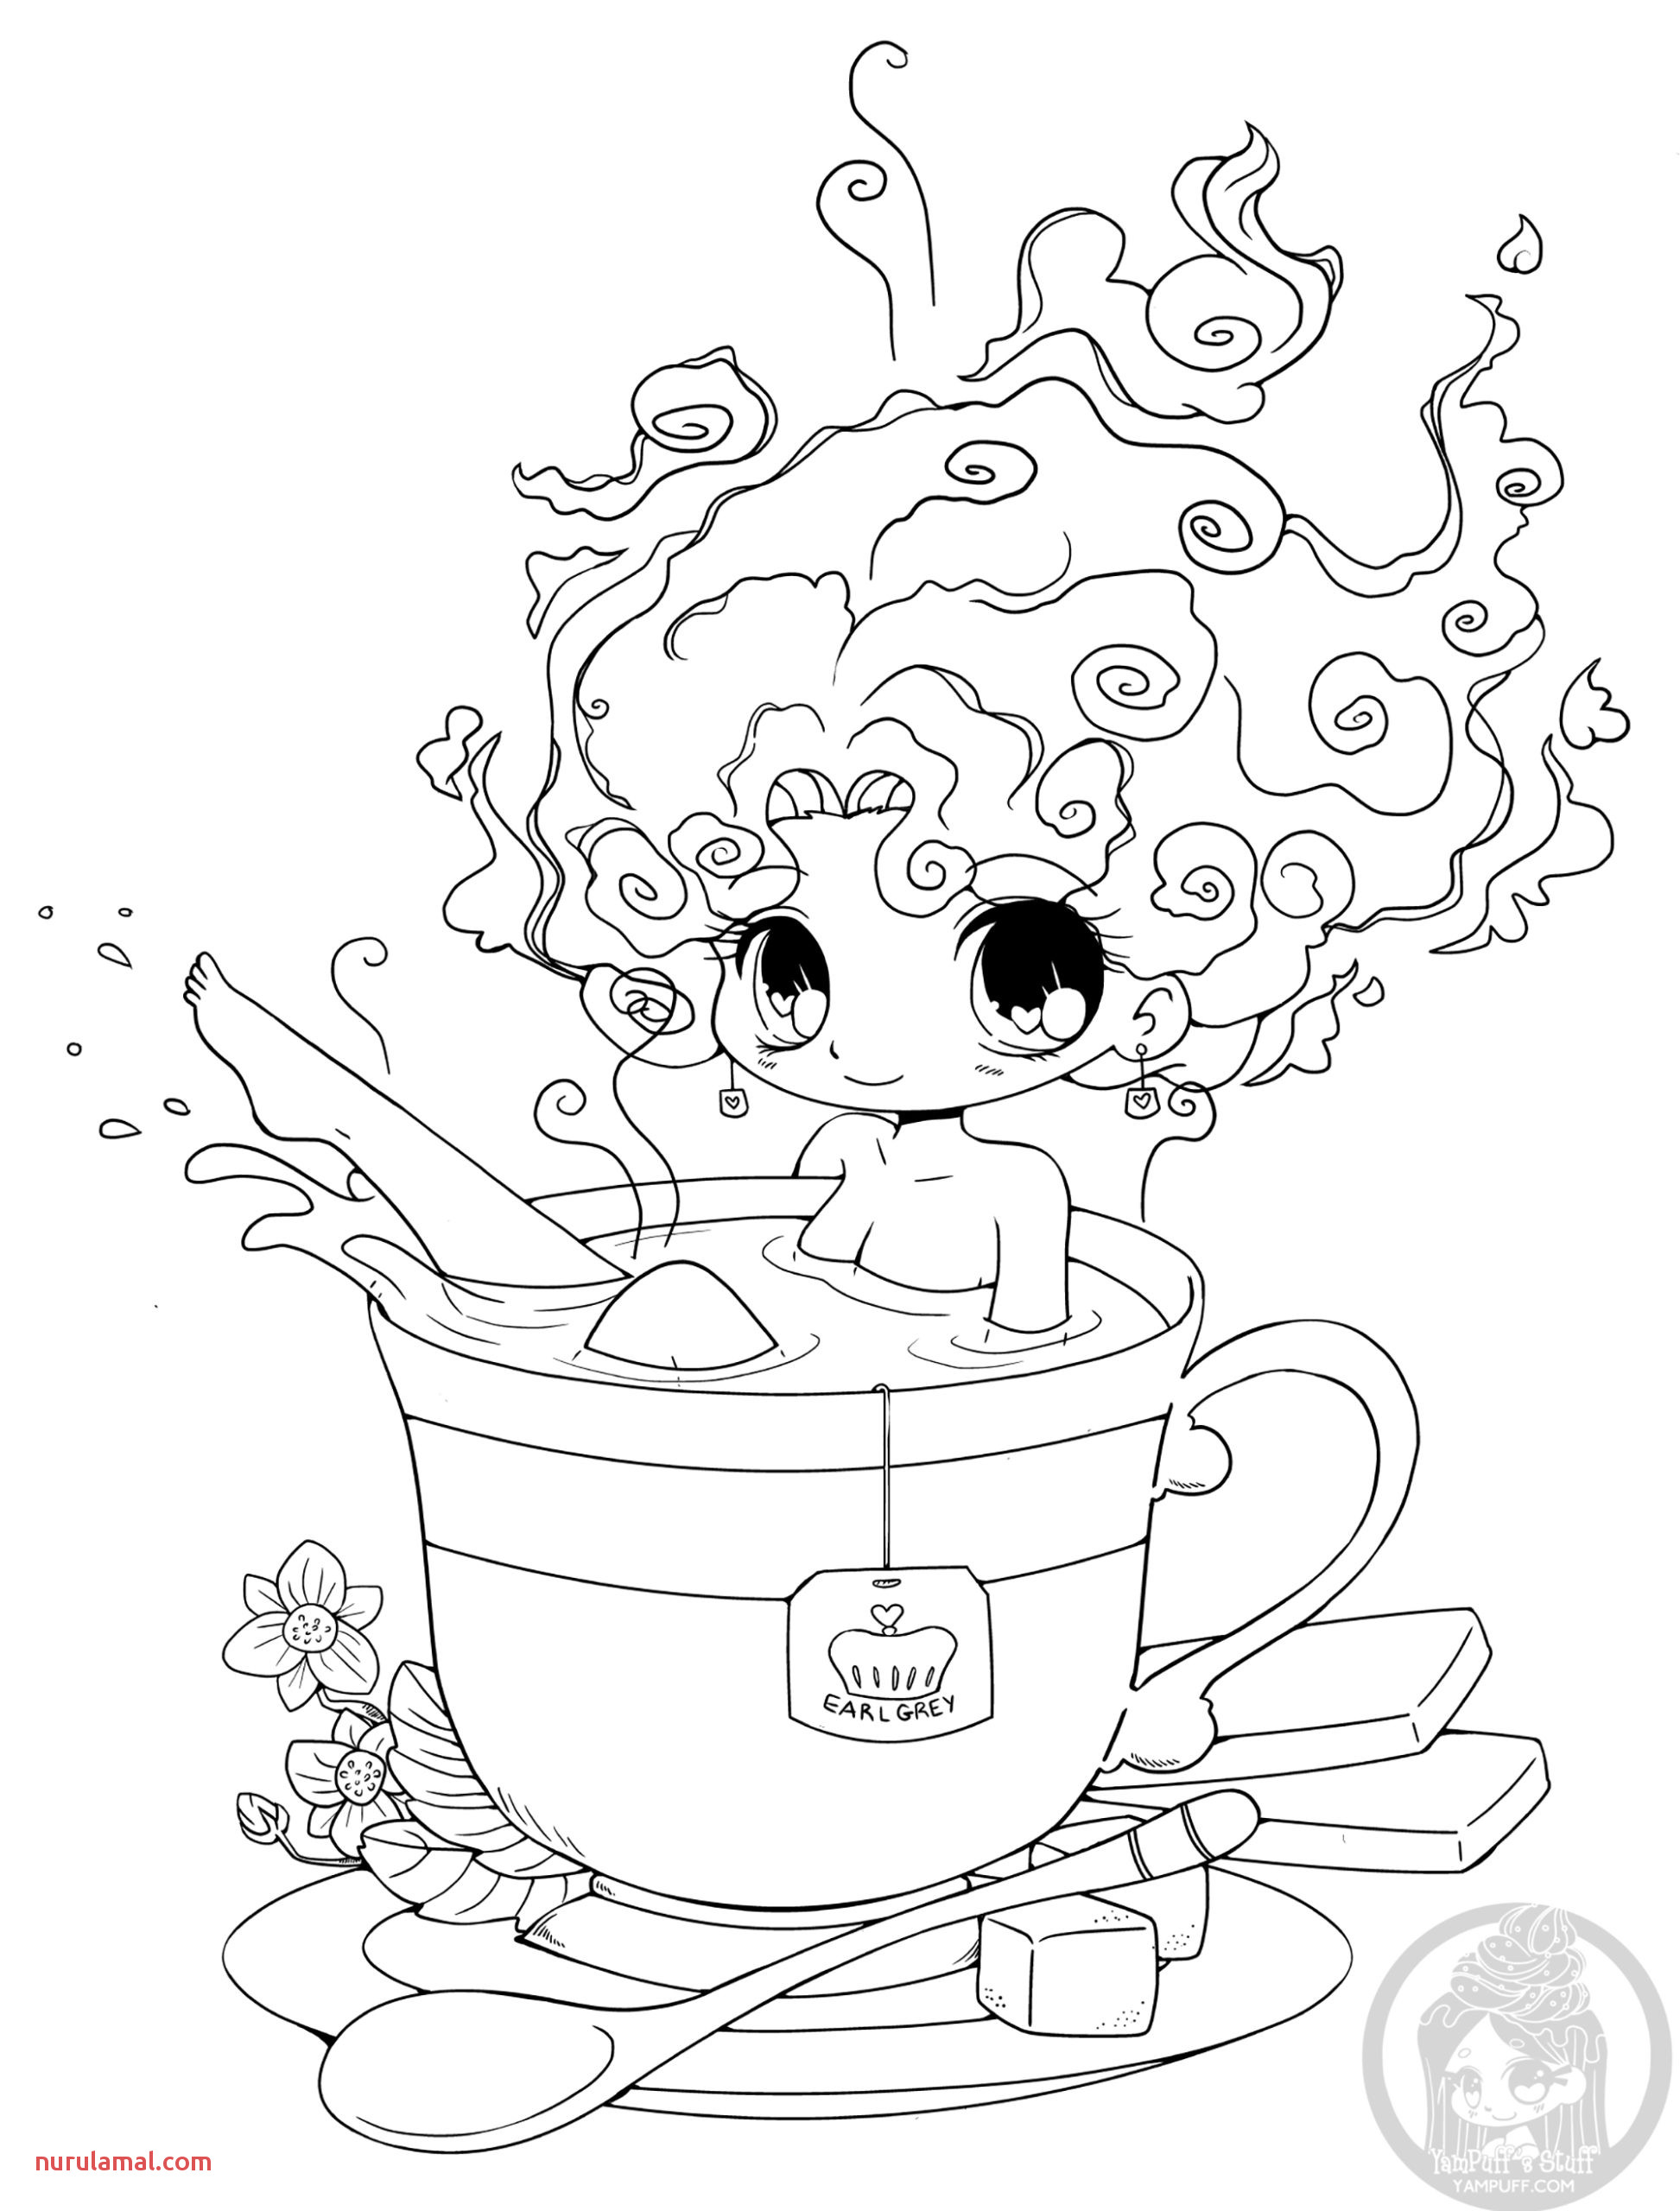 Coloring Pages No Problem Yampuff Coloring for Girls Hot